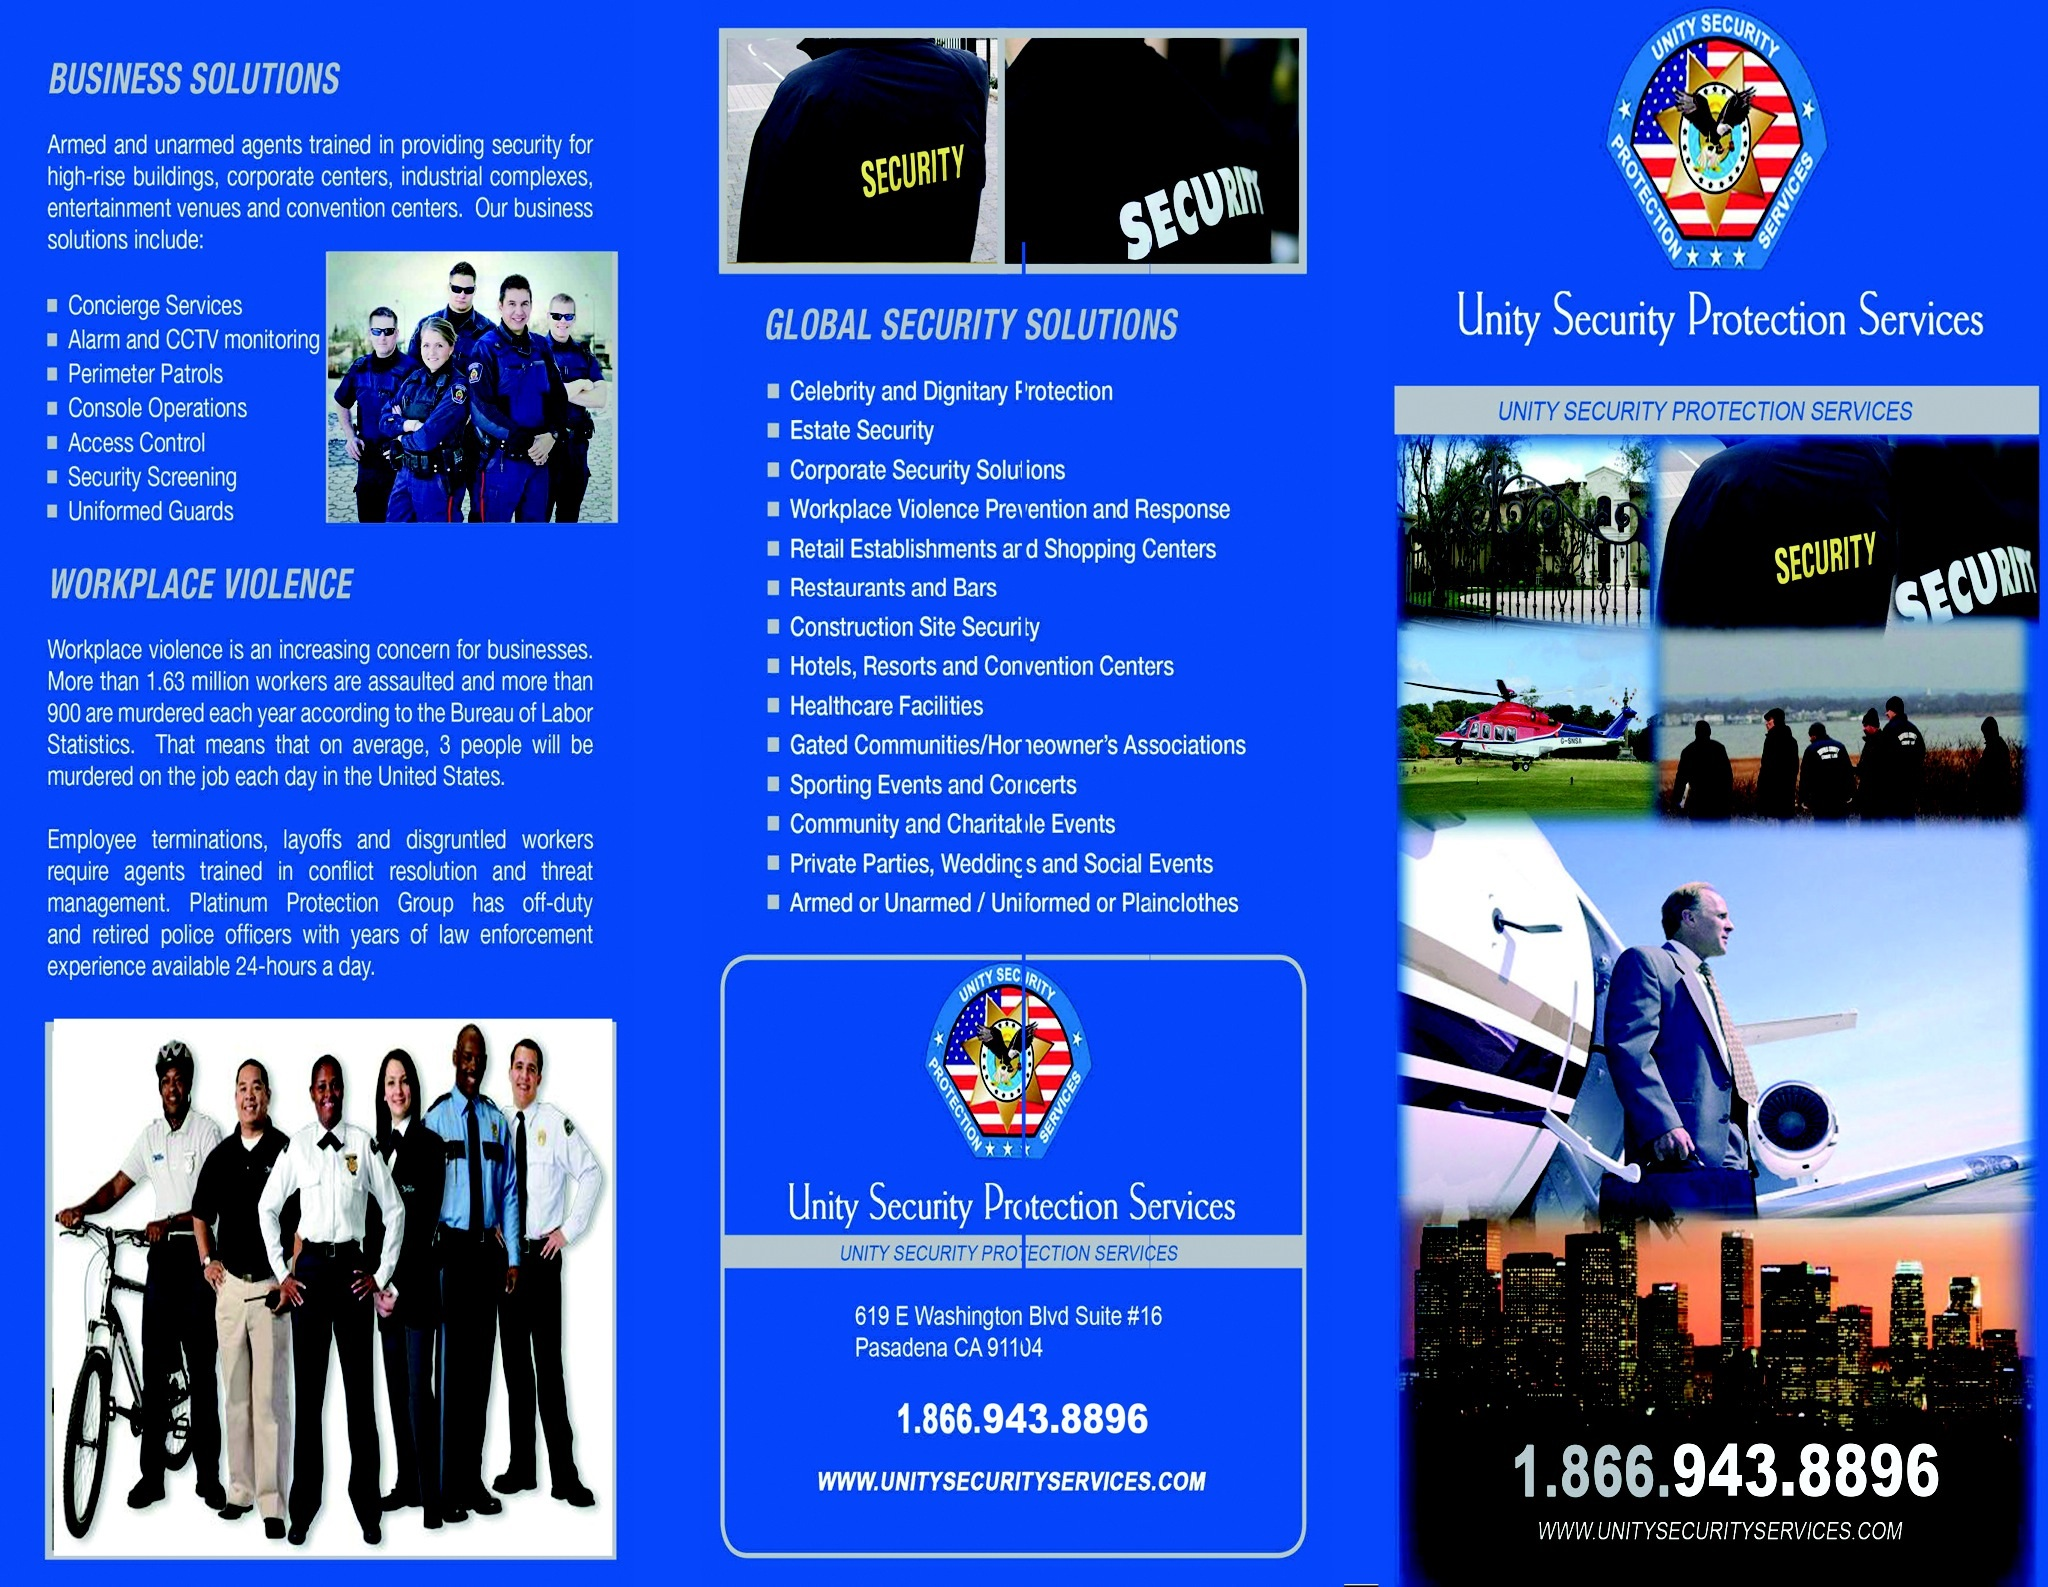 Unity Security & Protection Services - ad image